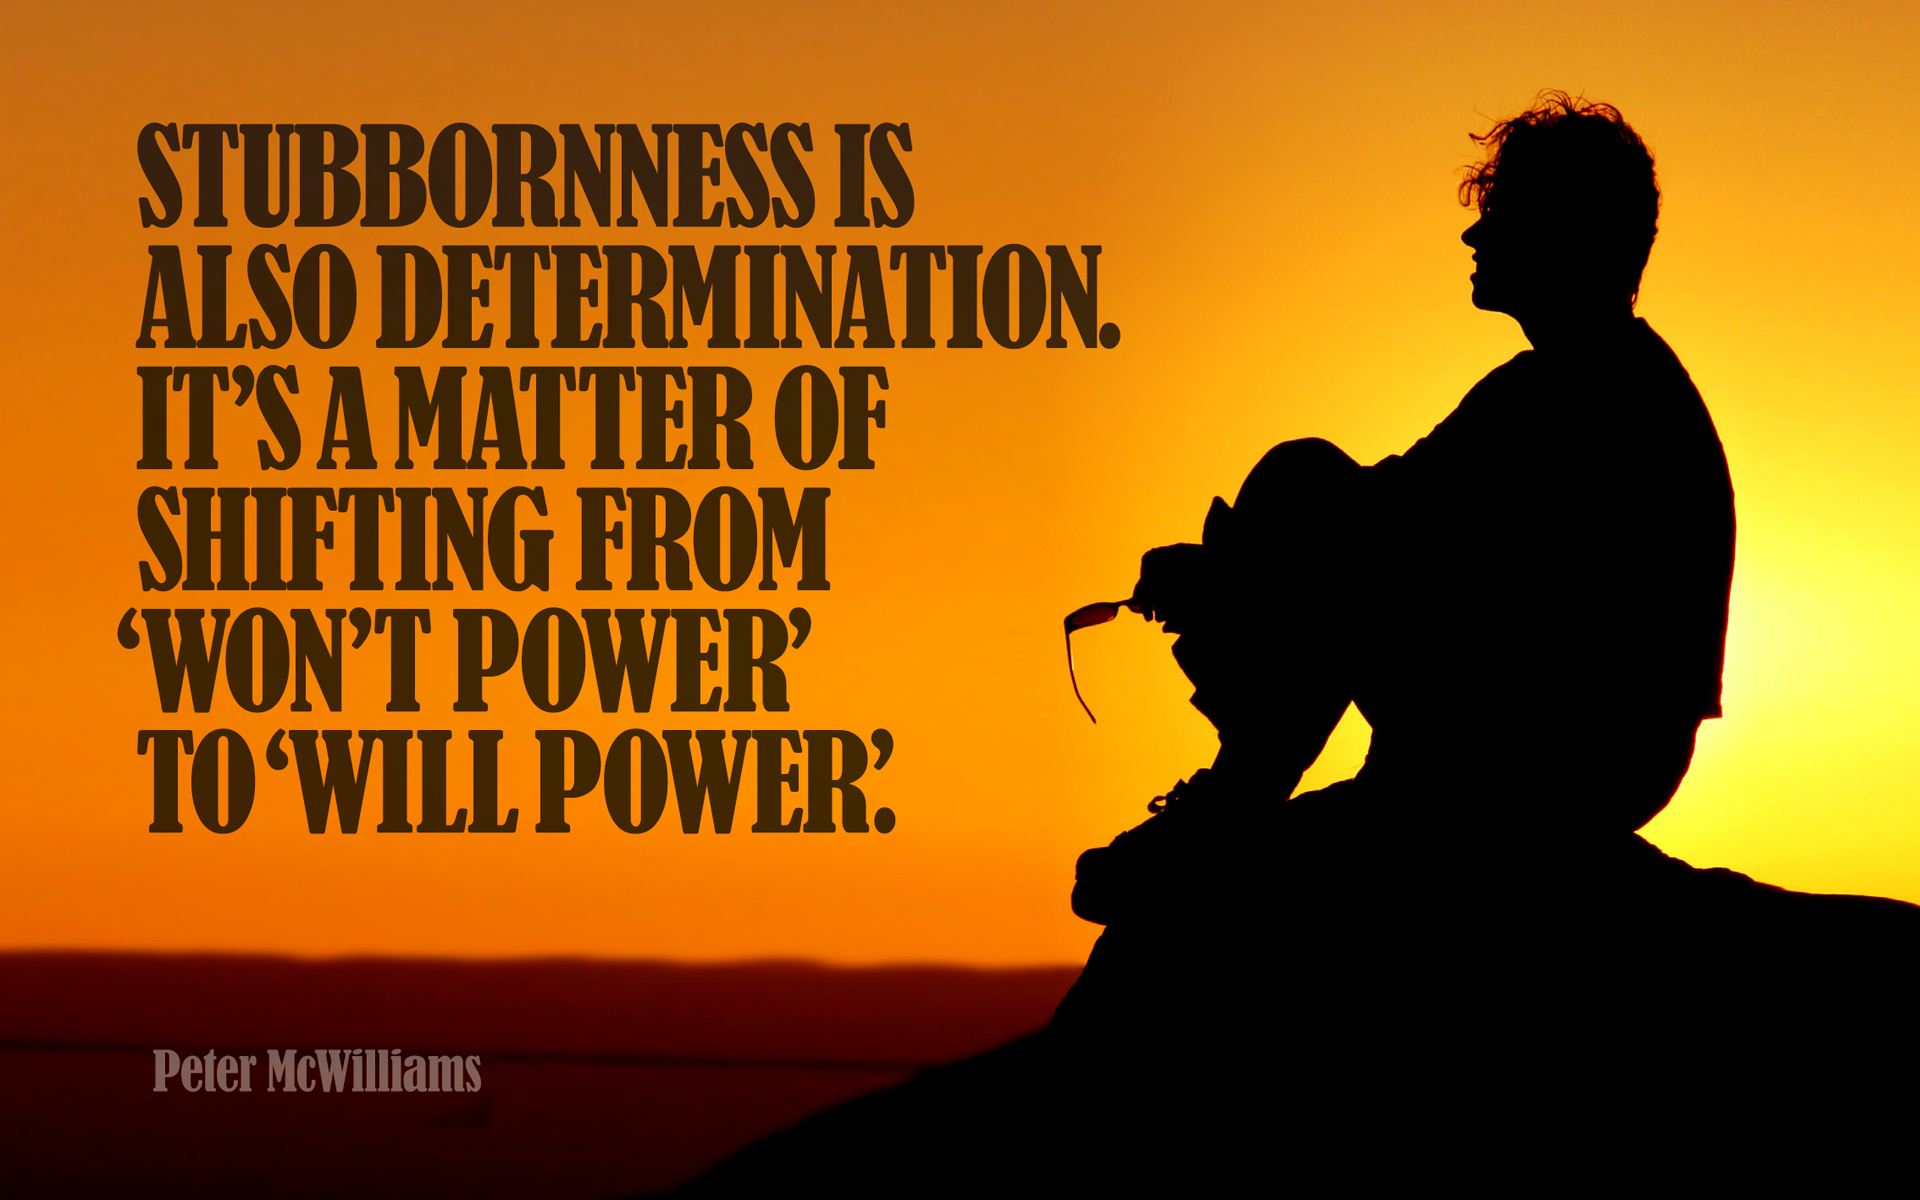 Stubborness is also determination. It's a matter of shifting from 'Won't Power' to 'Will Power'. — Peter McWilliams [1920×1200]